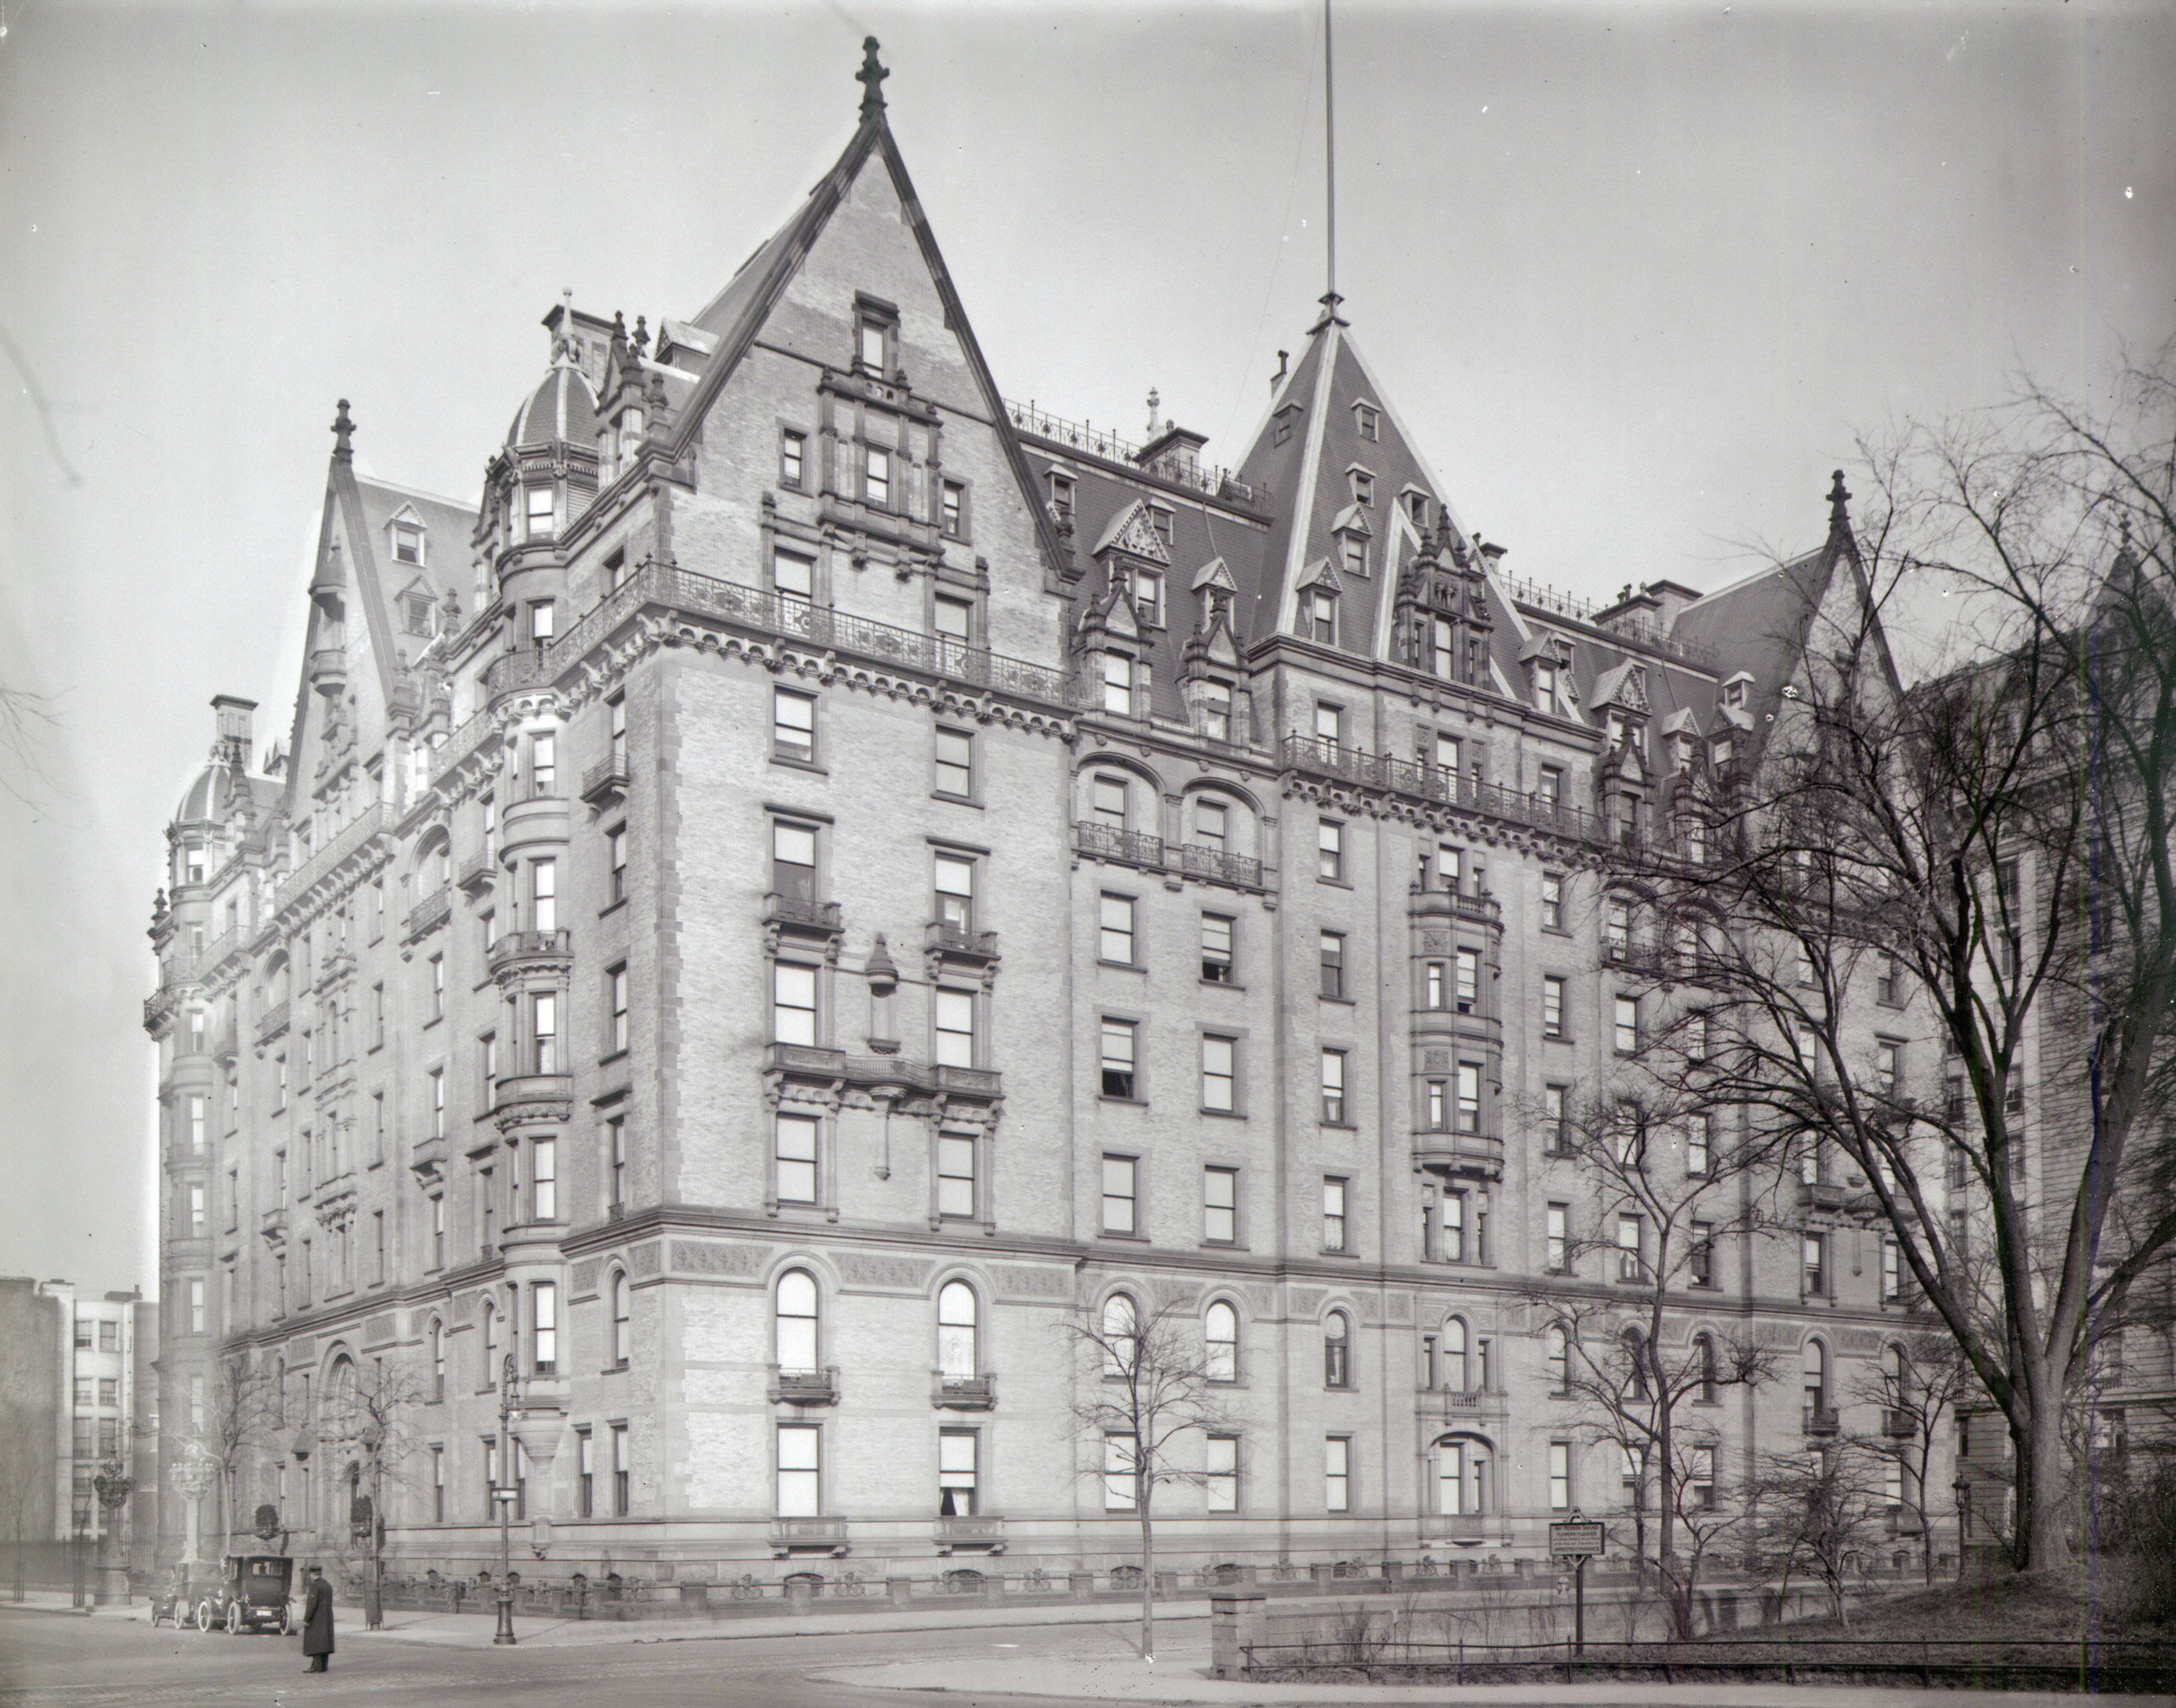 The photograph can be dated to about 1910 by the automobiles at the curb, and by the presence of the Langham Apartmentsat 135 Central Park West between 73rd and 74th Streets, which was completed in 1906.